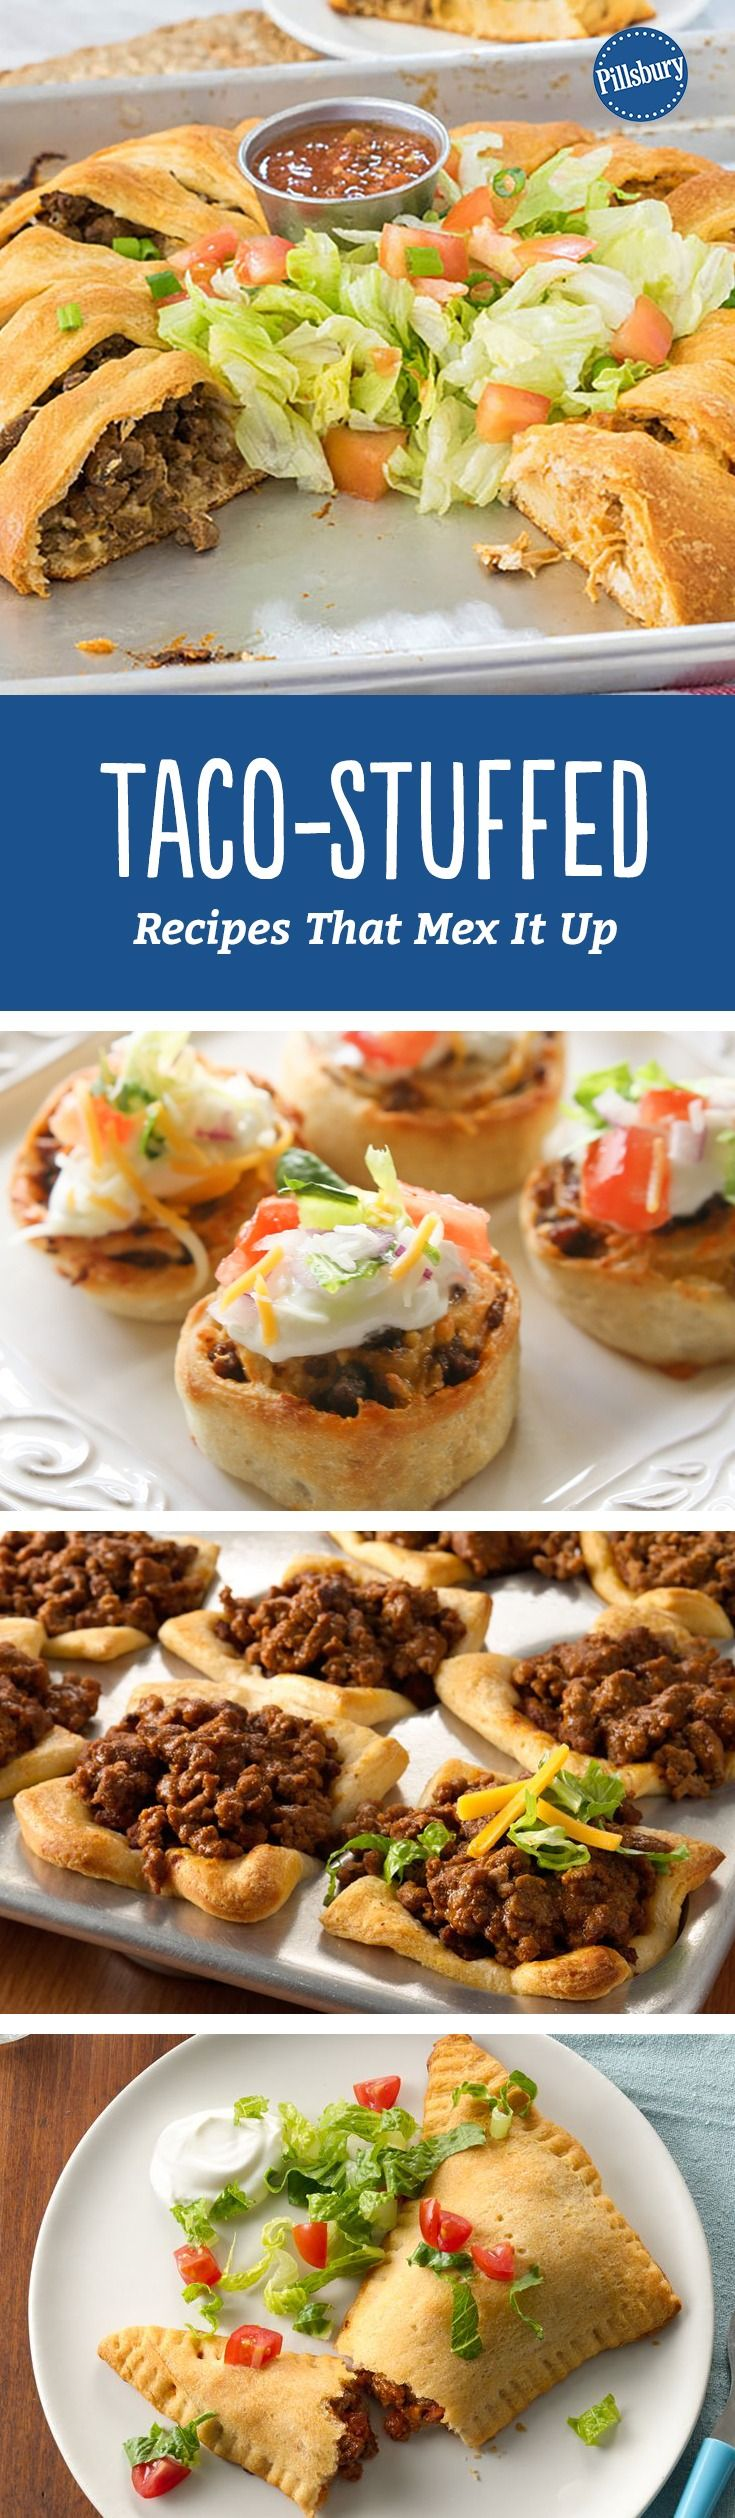 Best 25 mexican food appetizers ideas on pinterest mexican taco stuffed recipes that mex it up mexican food recipestop forumfinder Images